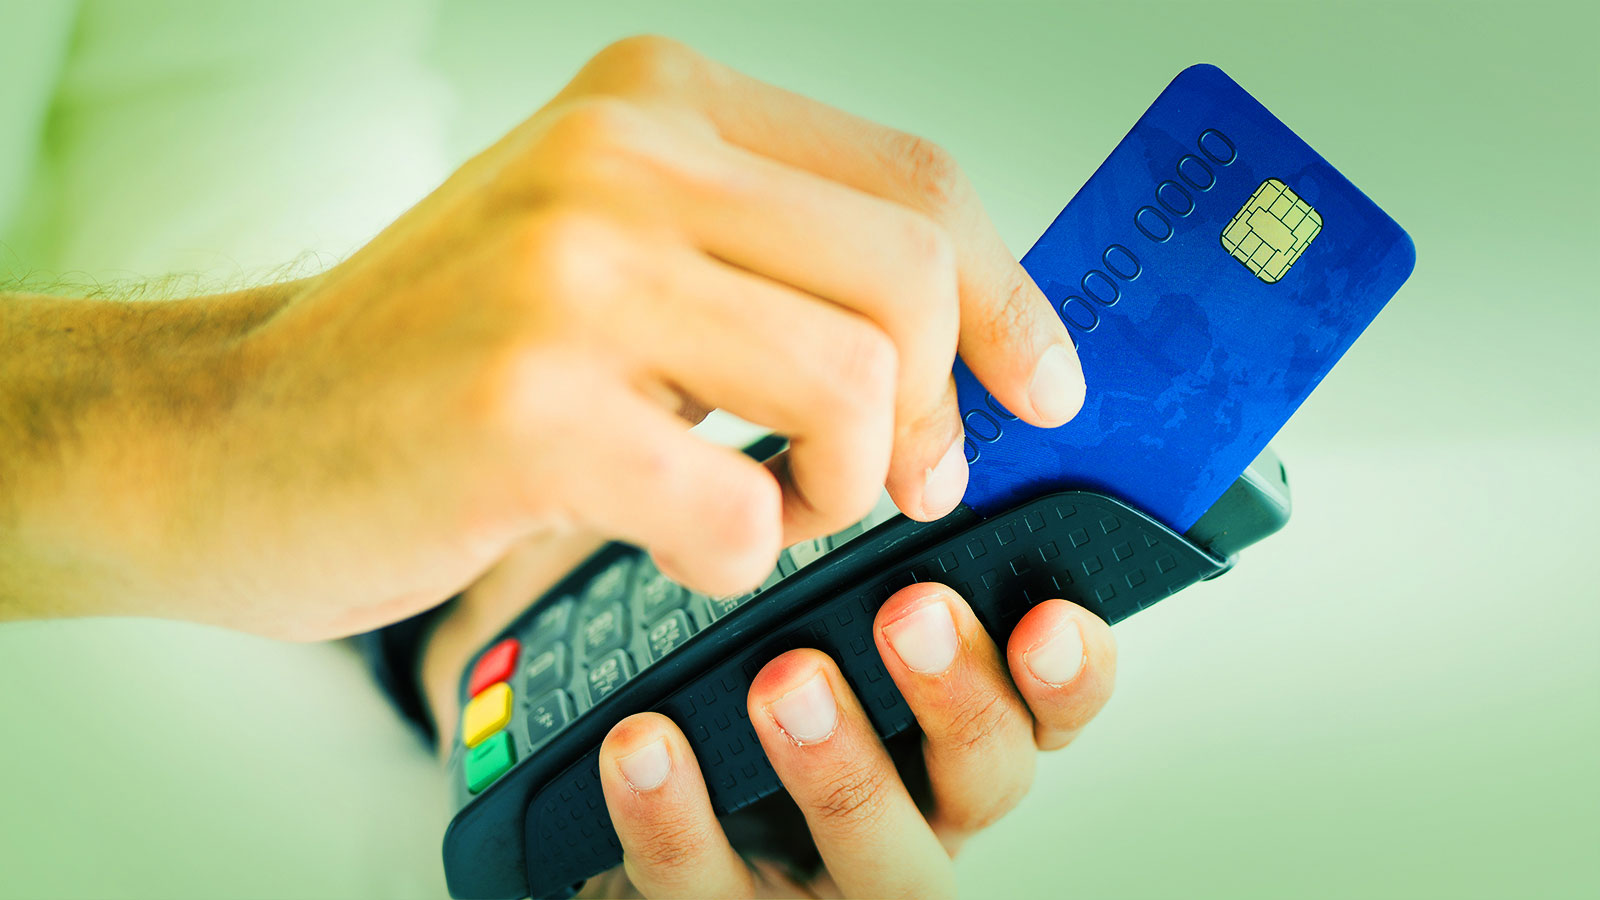 Card swipe for credit card tokenization